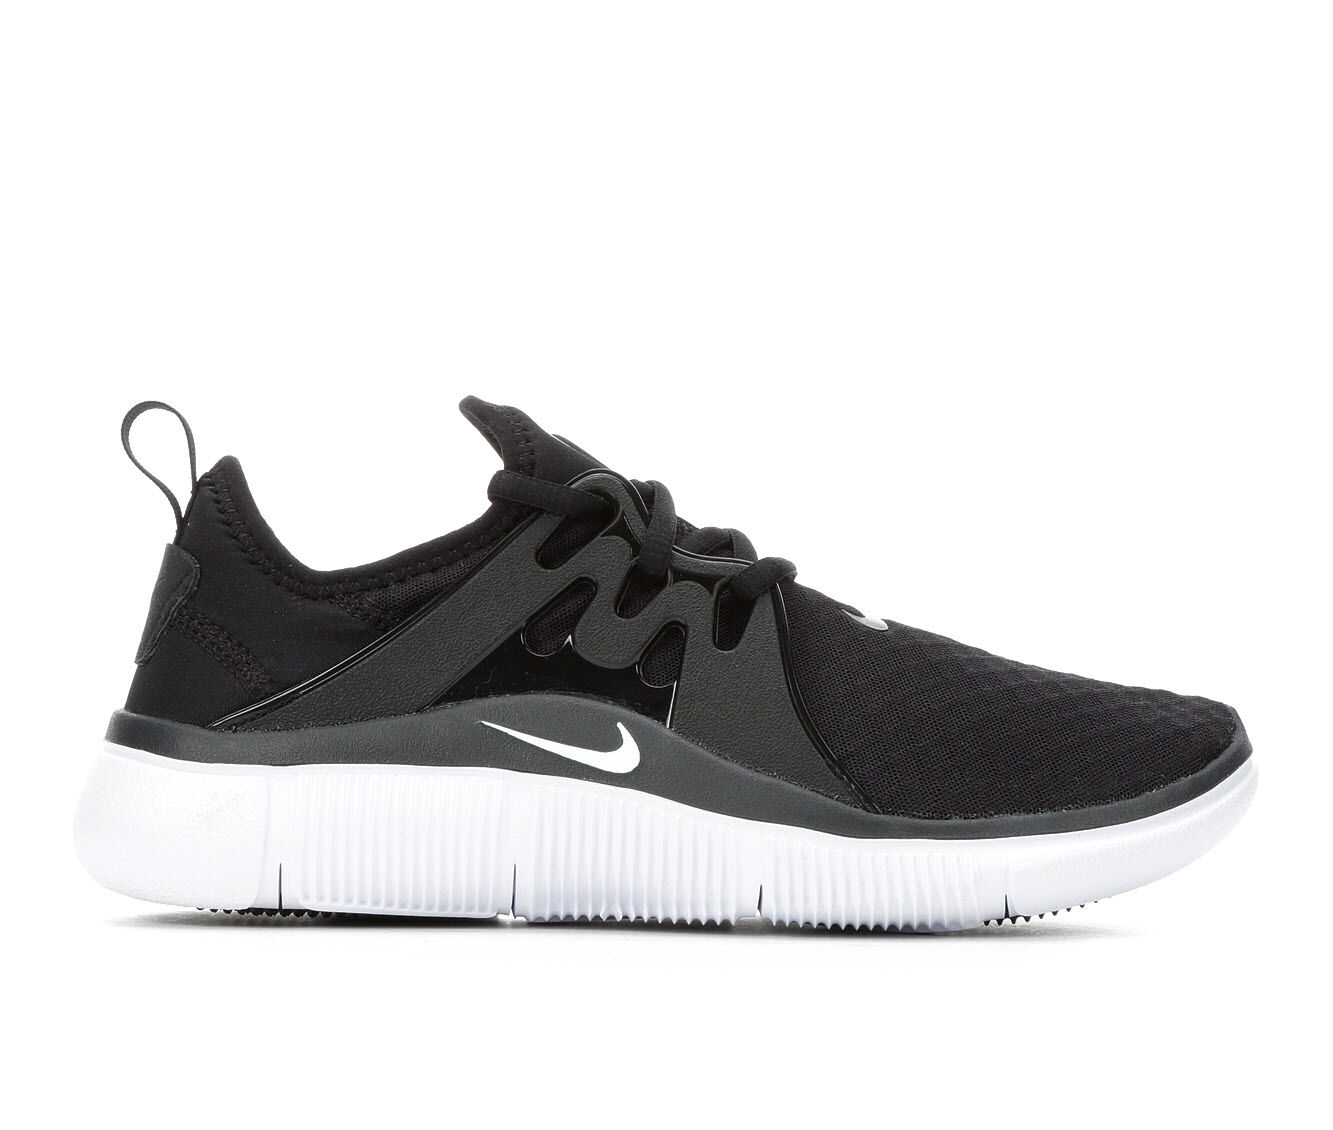 Women's Nike Acalme Sneakers Blk/Wht/Anth